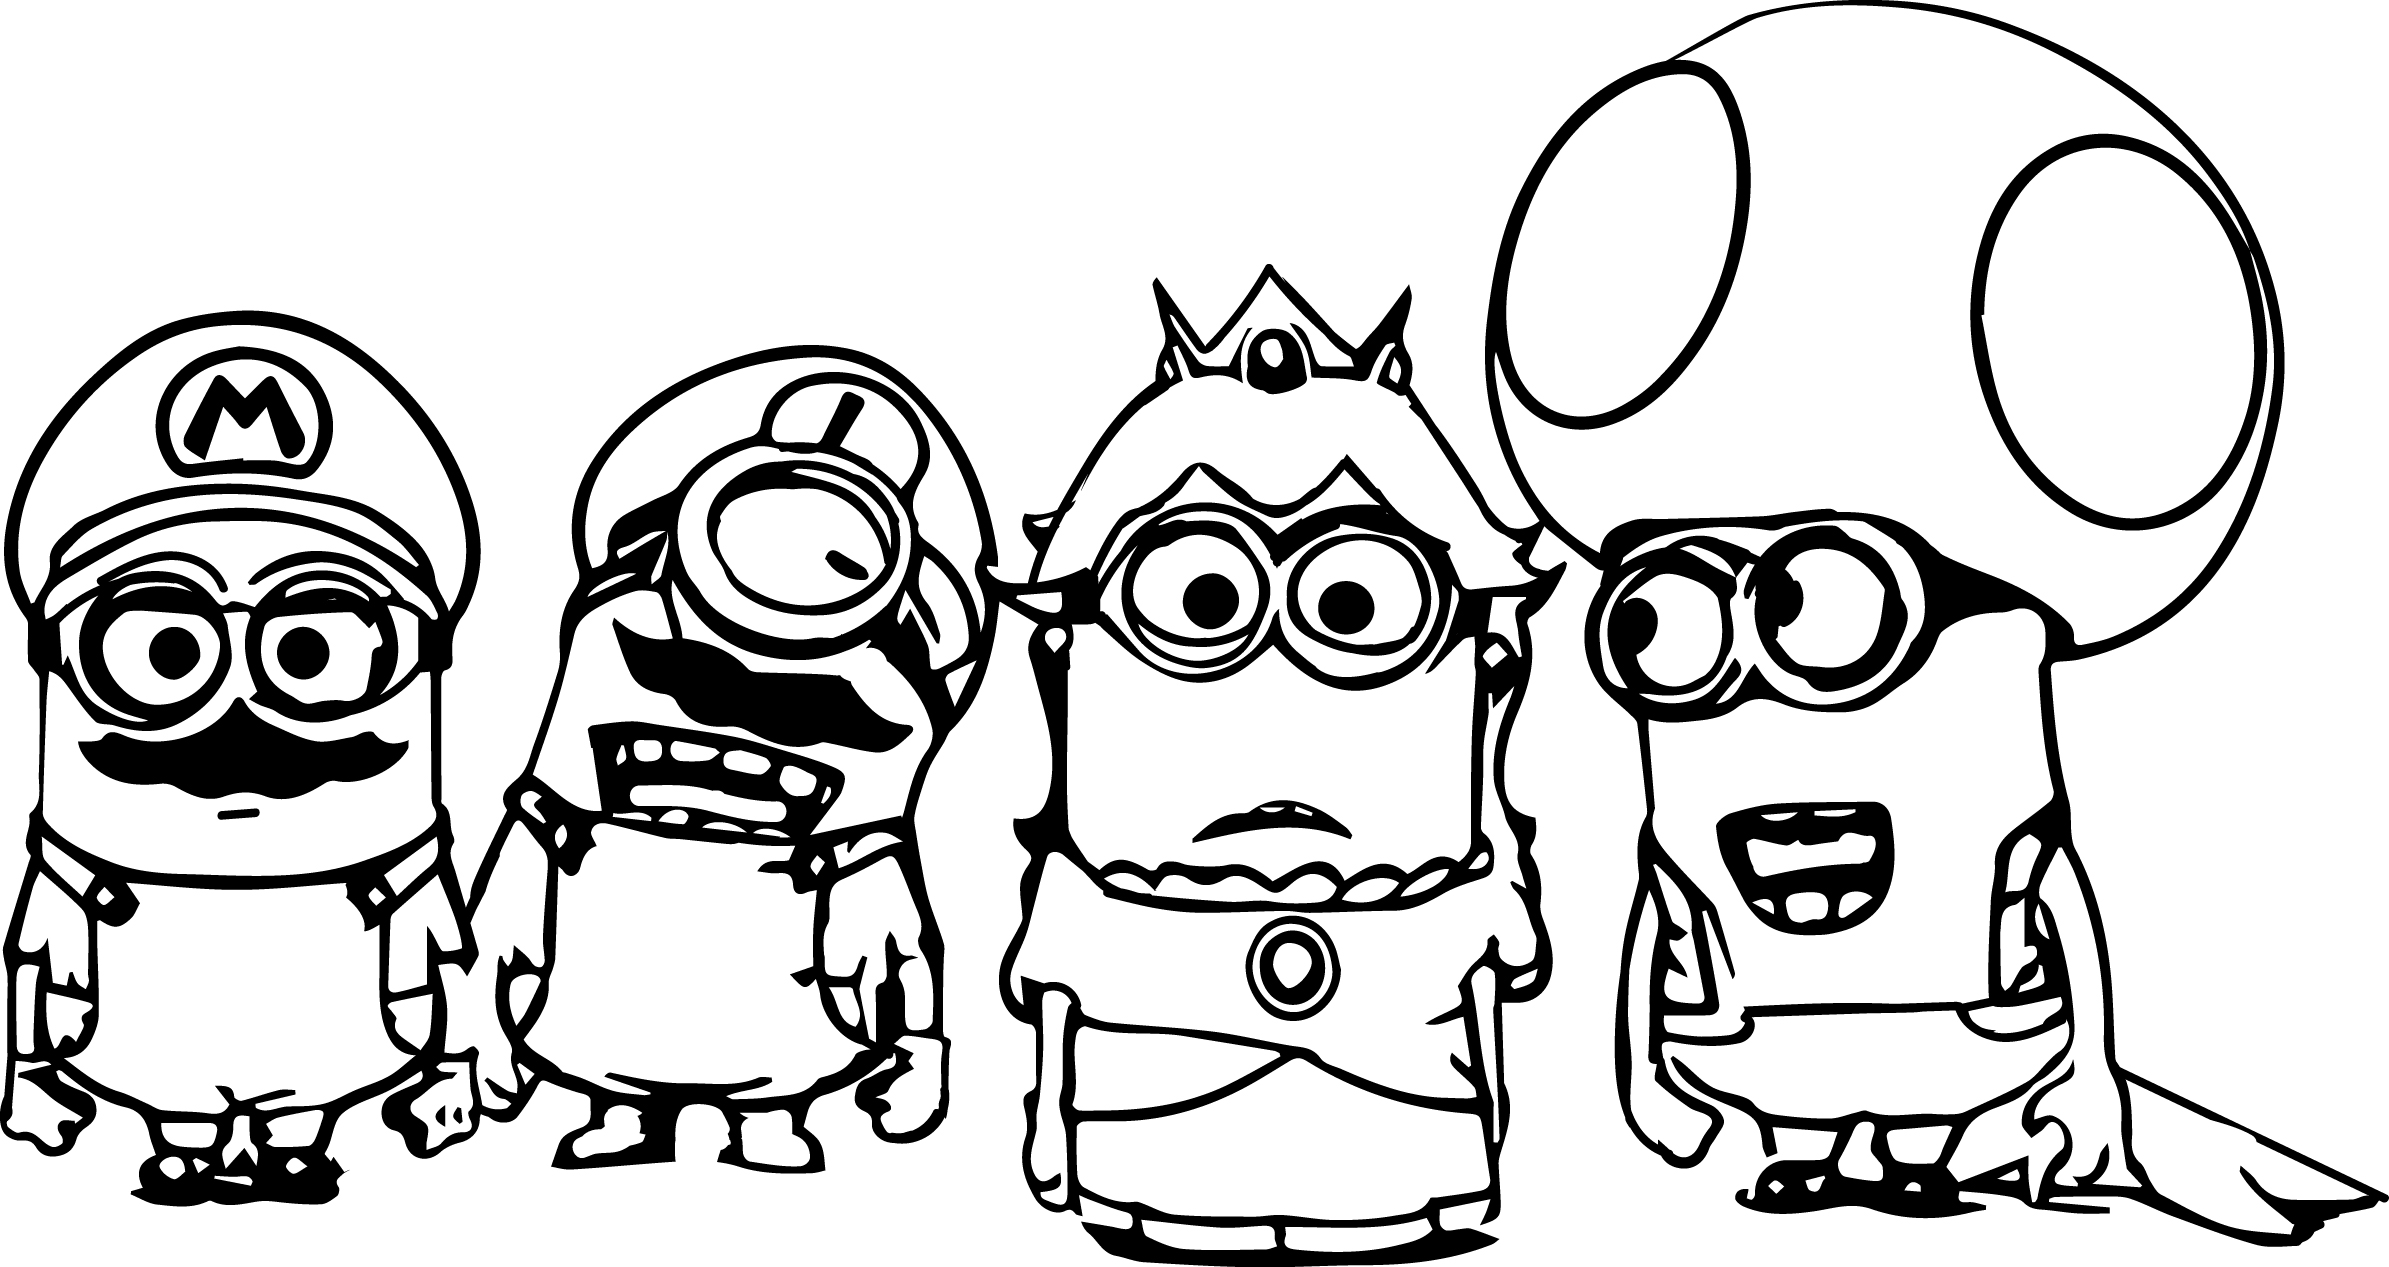 free coloring pages minions minions free to color for children minions kids coloring free minions coloring pages